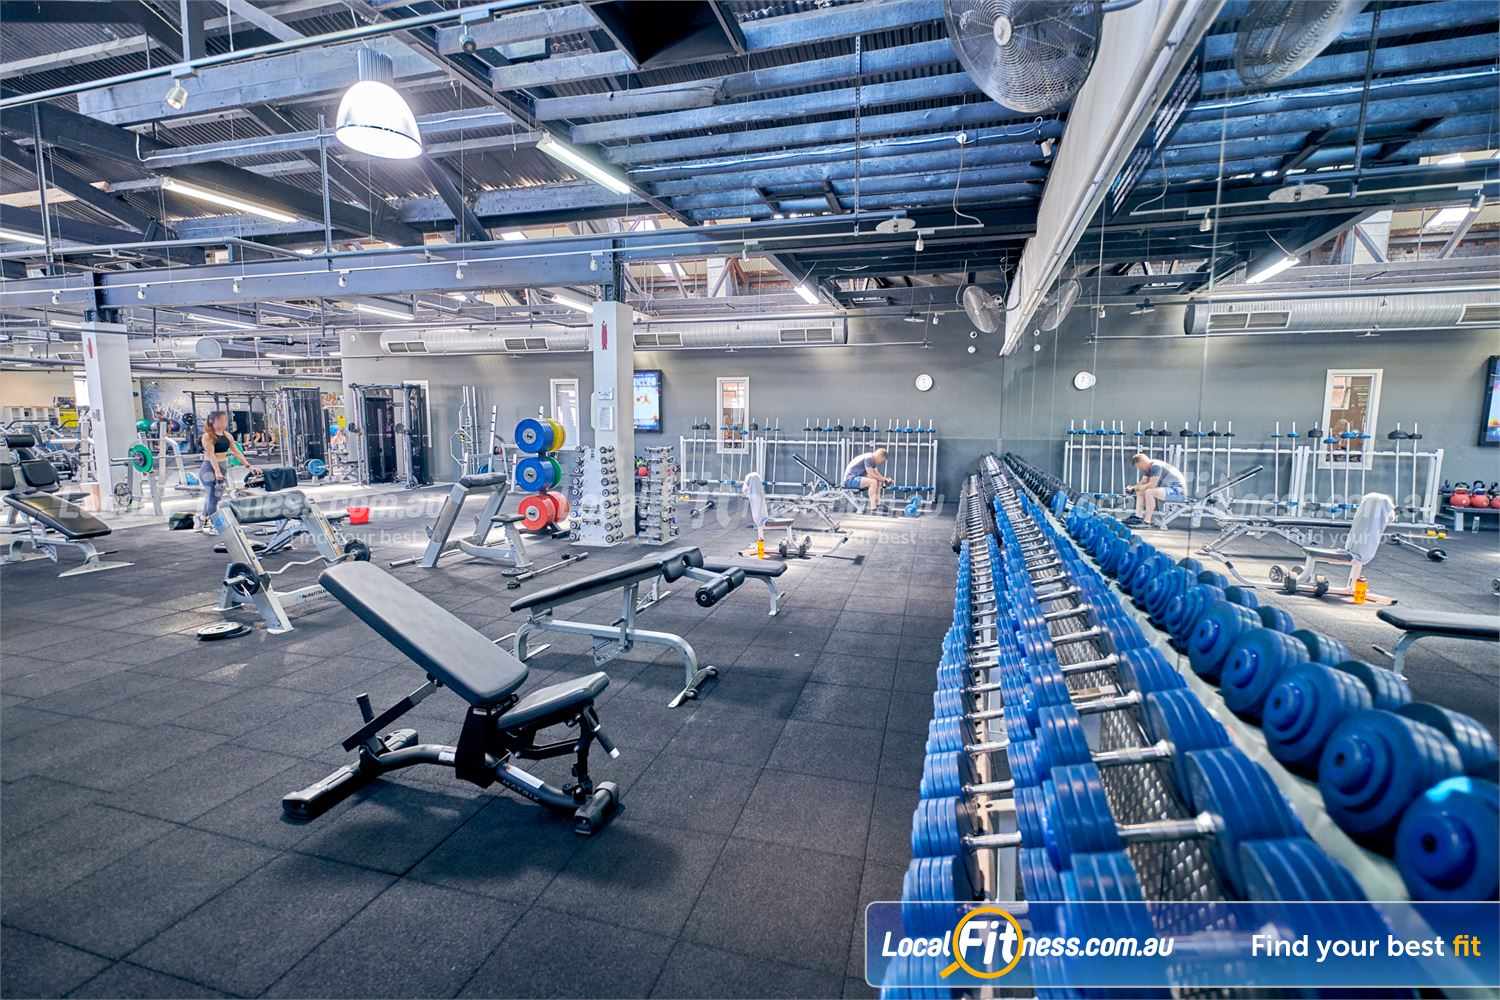 Goodlife Health Clubs Prahran Our 24-hour Prahran gym includes a fully equipped free-weights area.